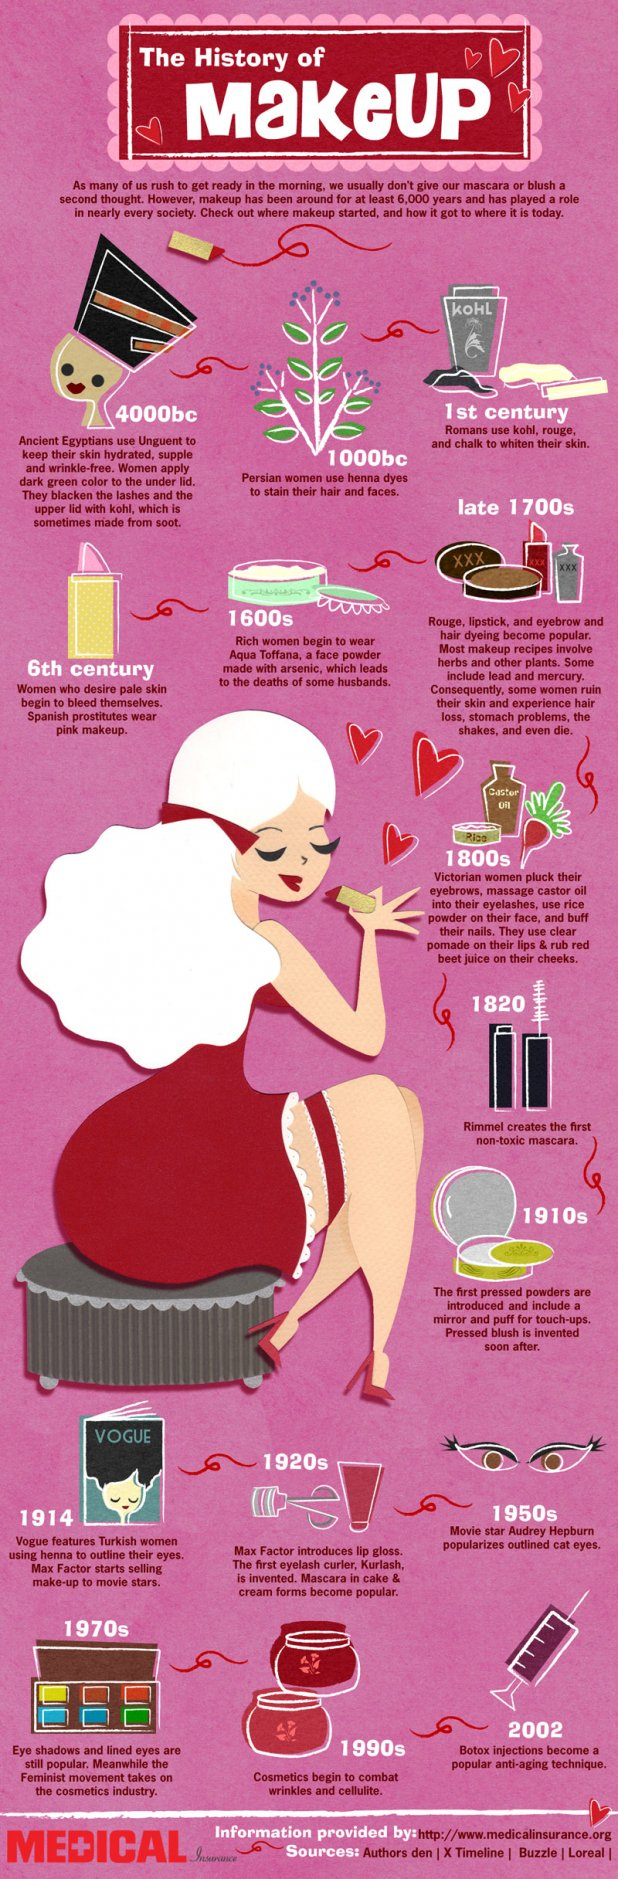 The-History-Of-Makeup-Infographic